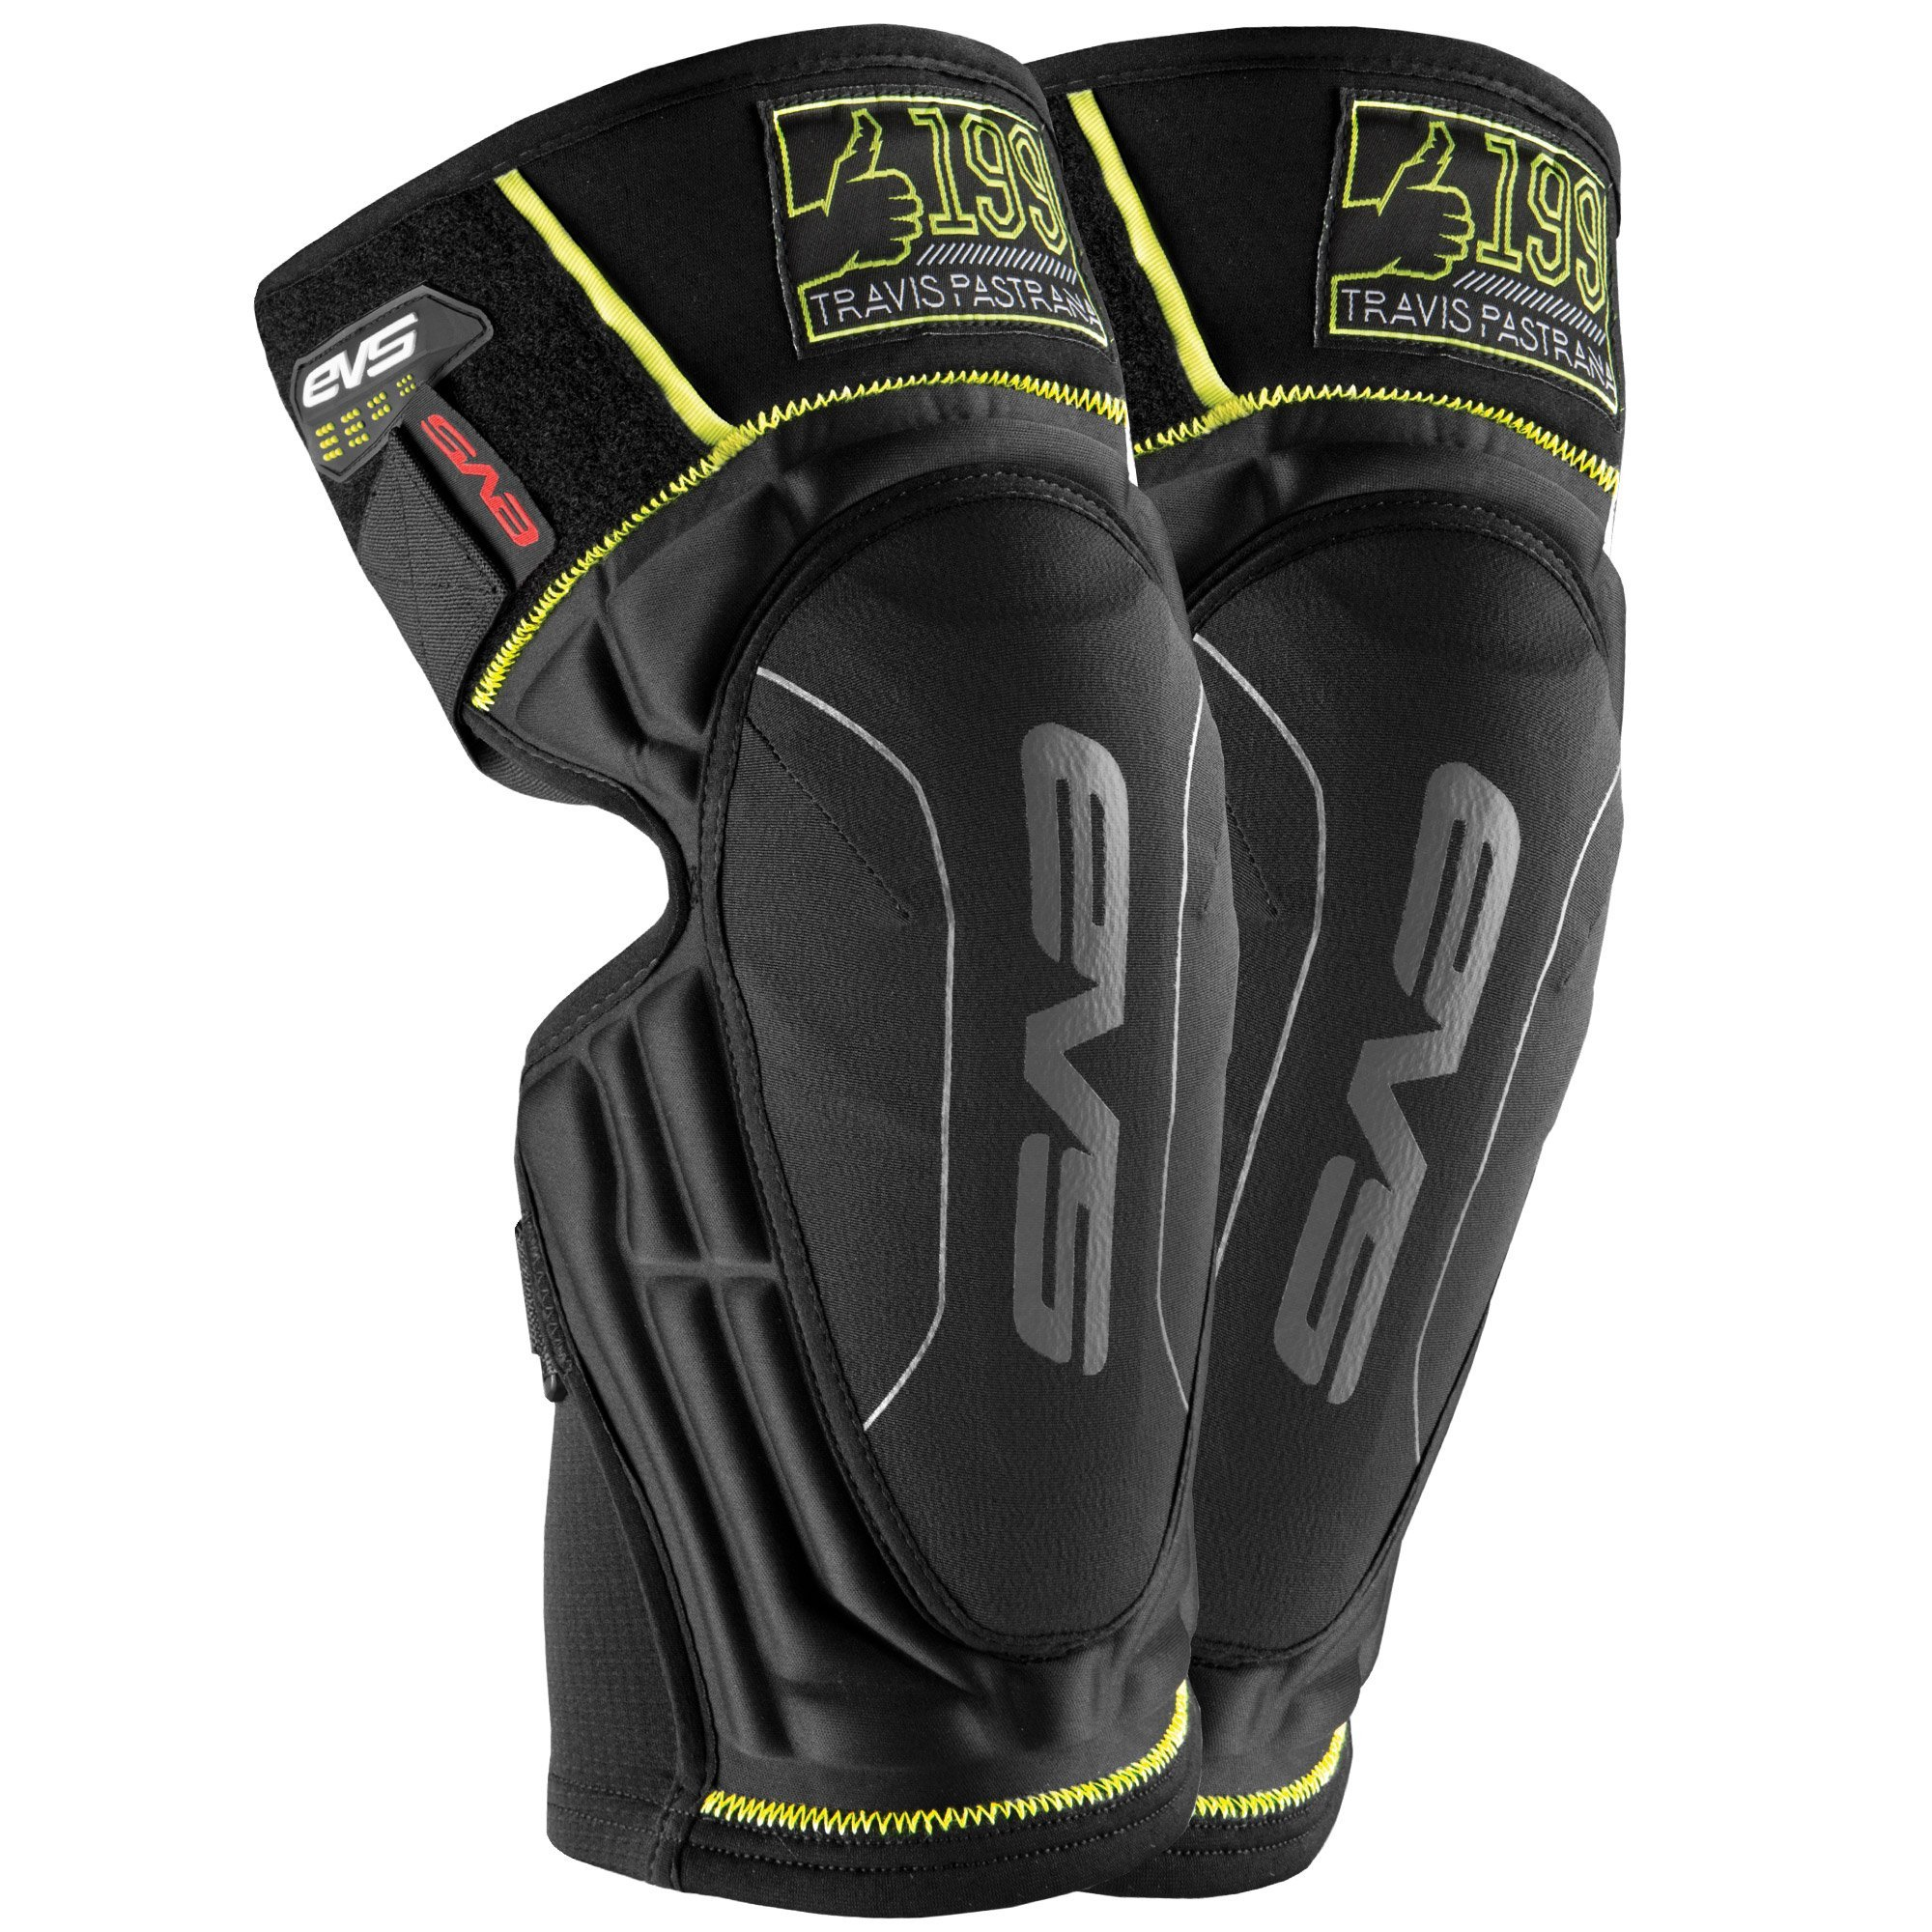 EVS Sports Men's Knee Pad (TP199 Lite Pair) (Black, Large/X-Large), 2 Pack by EVS Sports